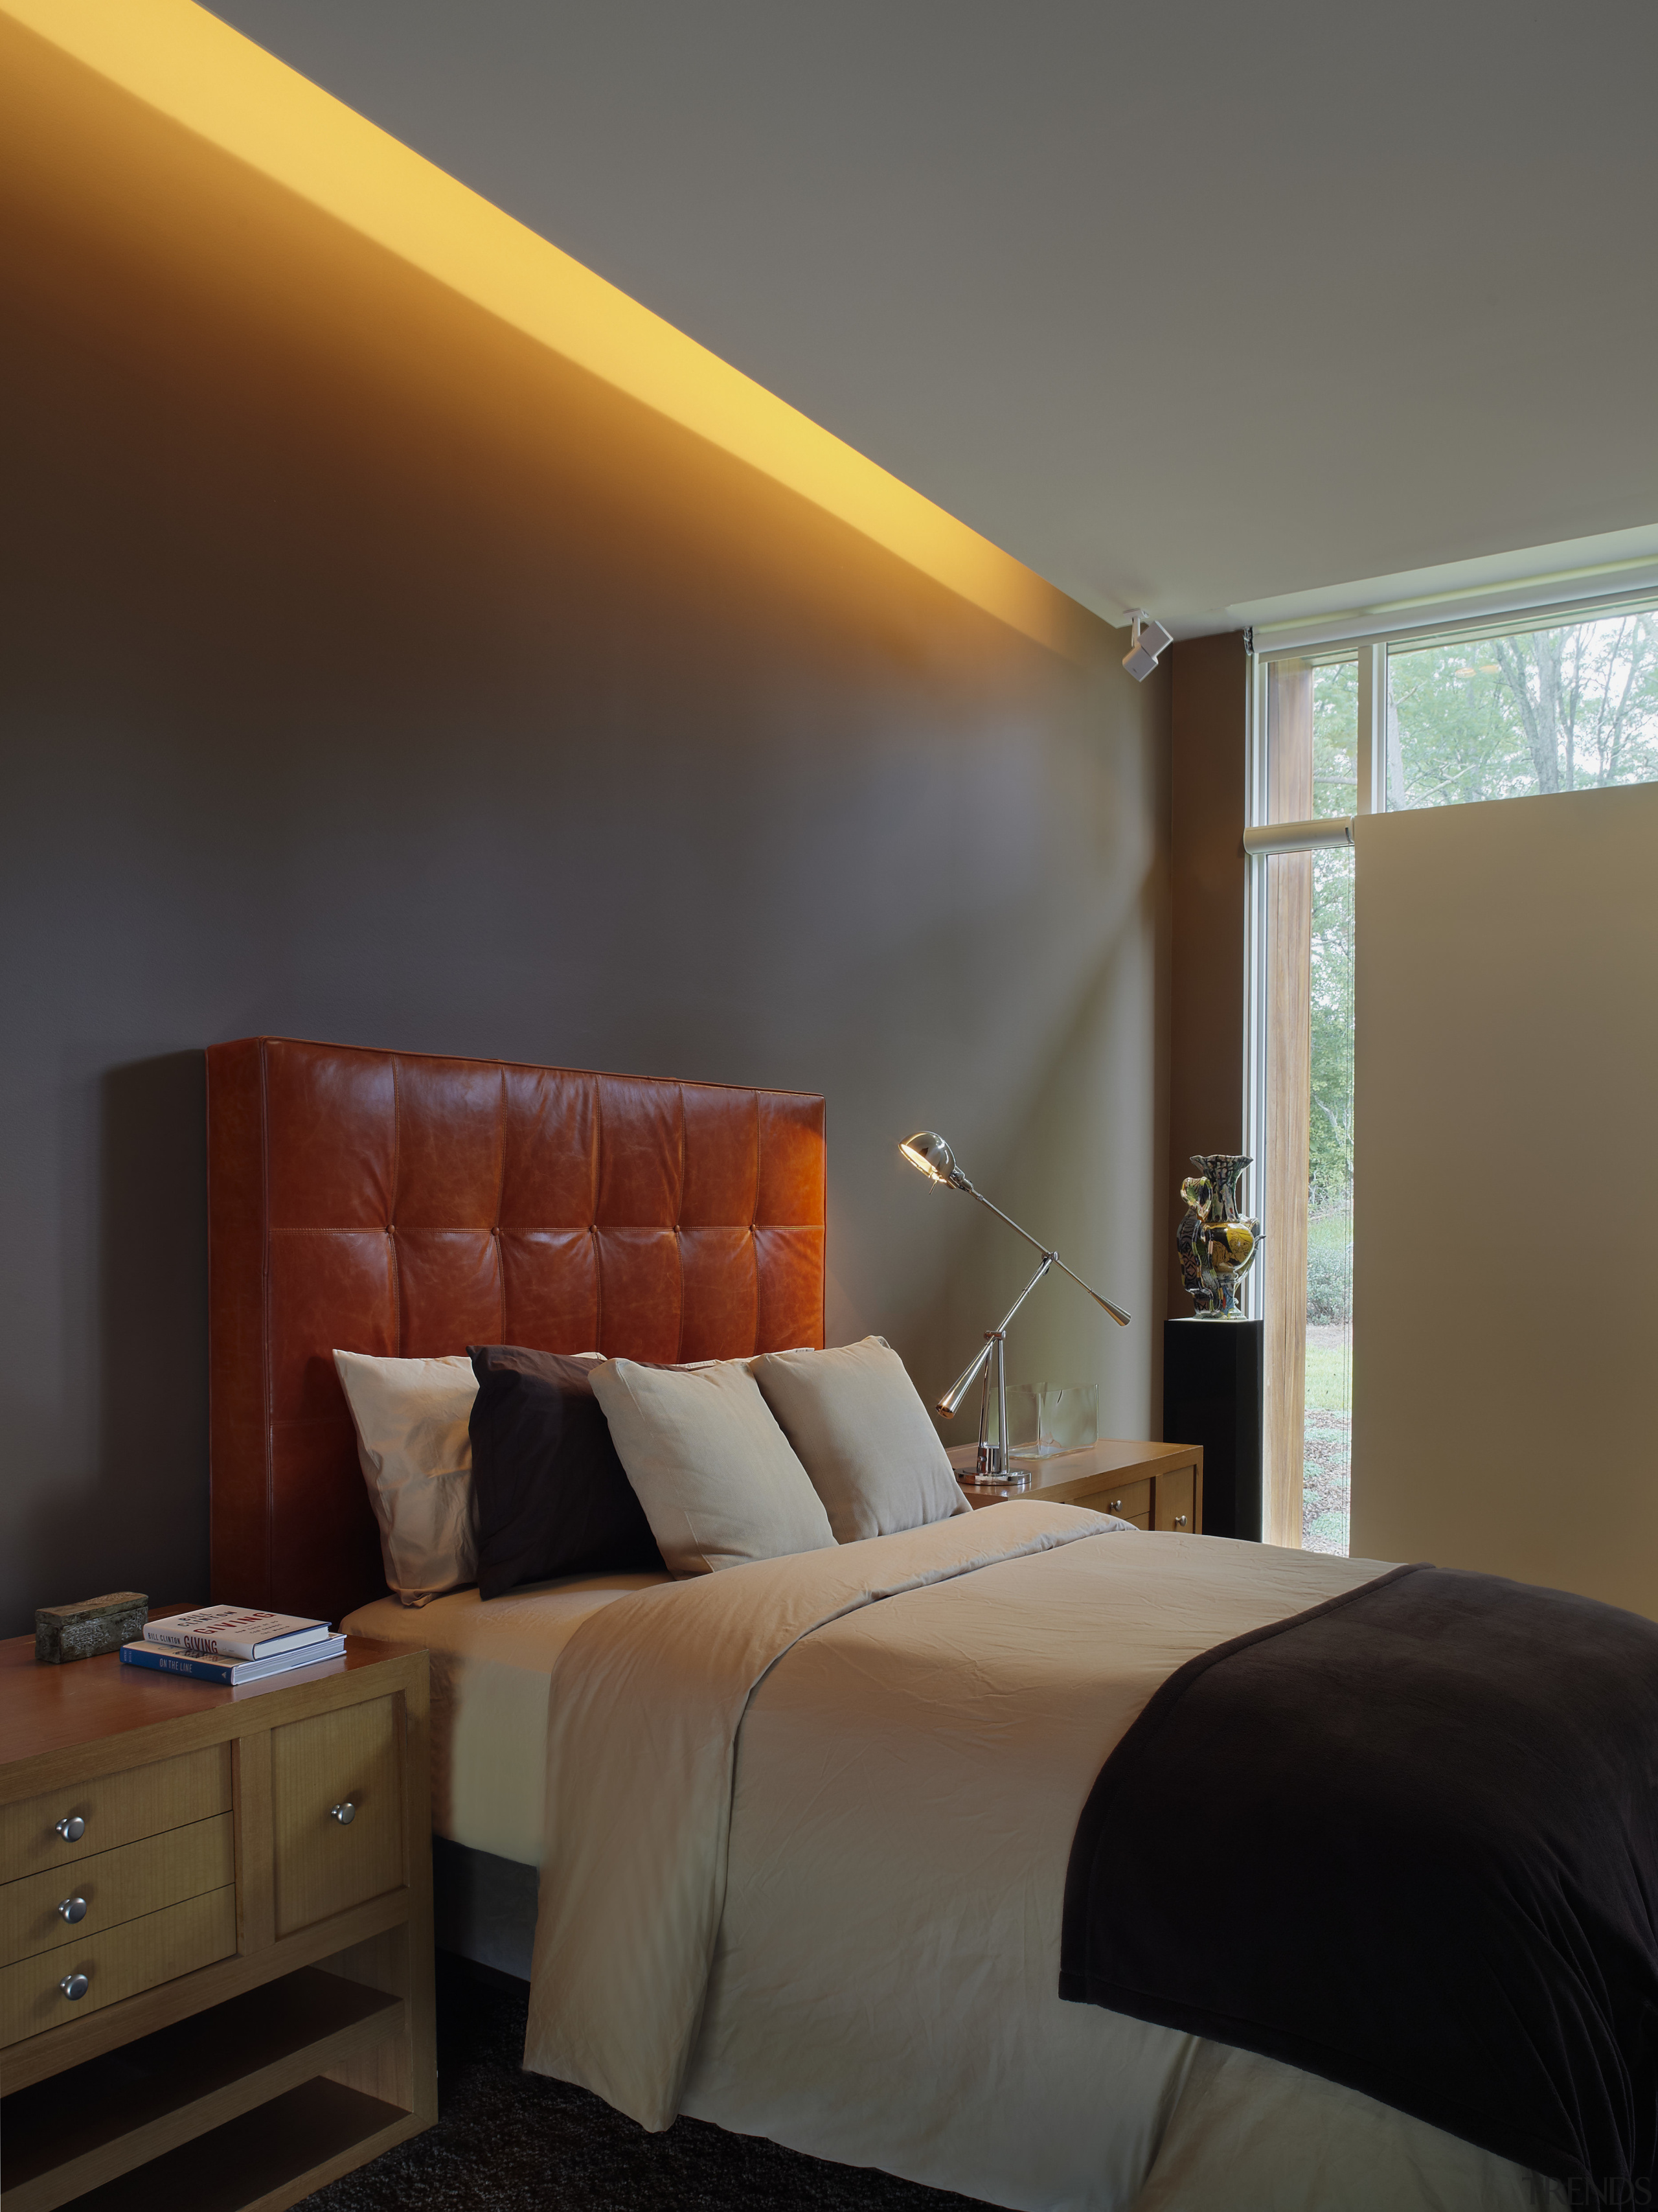 bedroom interior. fluorescent light stretched baove bed, white/grey architecture, bed, bed frame, bedroom, ceiling, daylighting, furniture, home, hotel, interior design, lighting, room, suite, wall, window, wood, black, gray